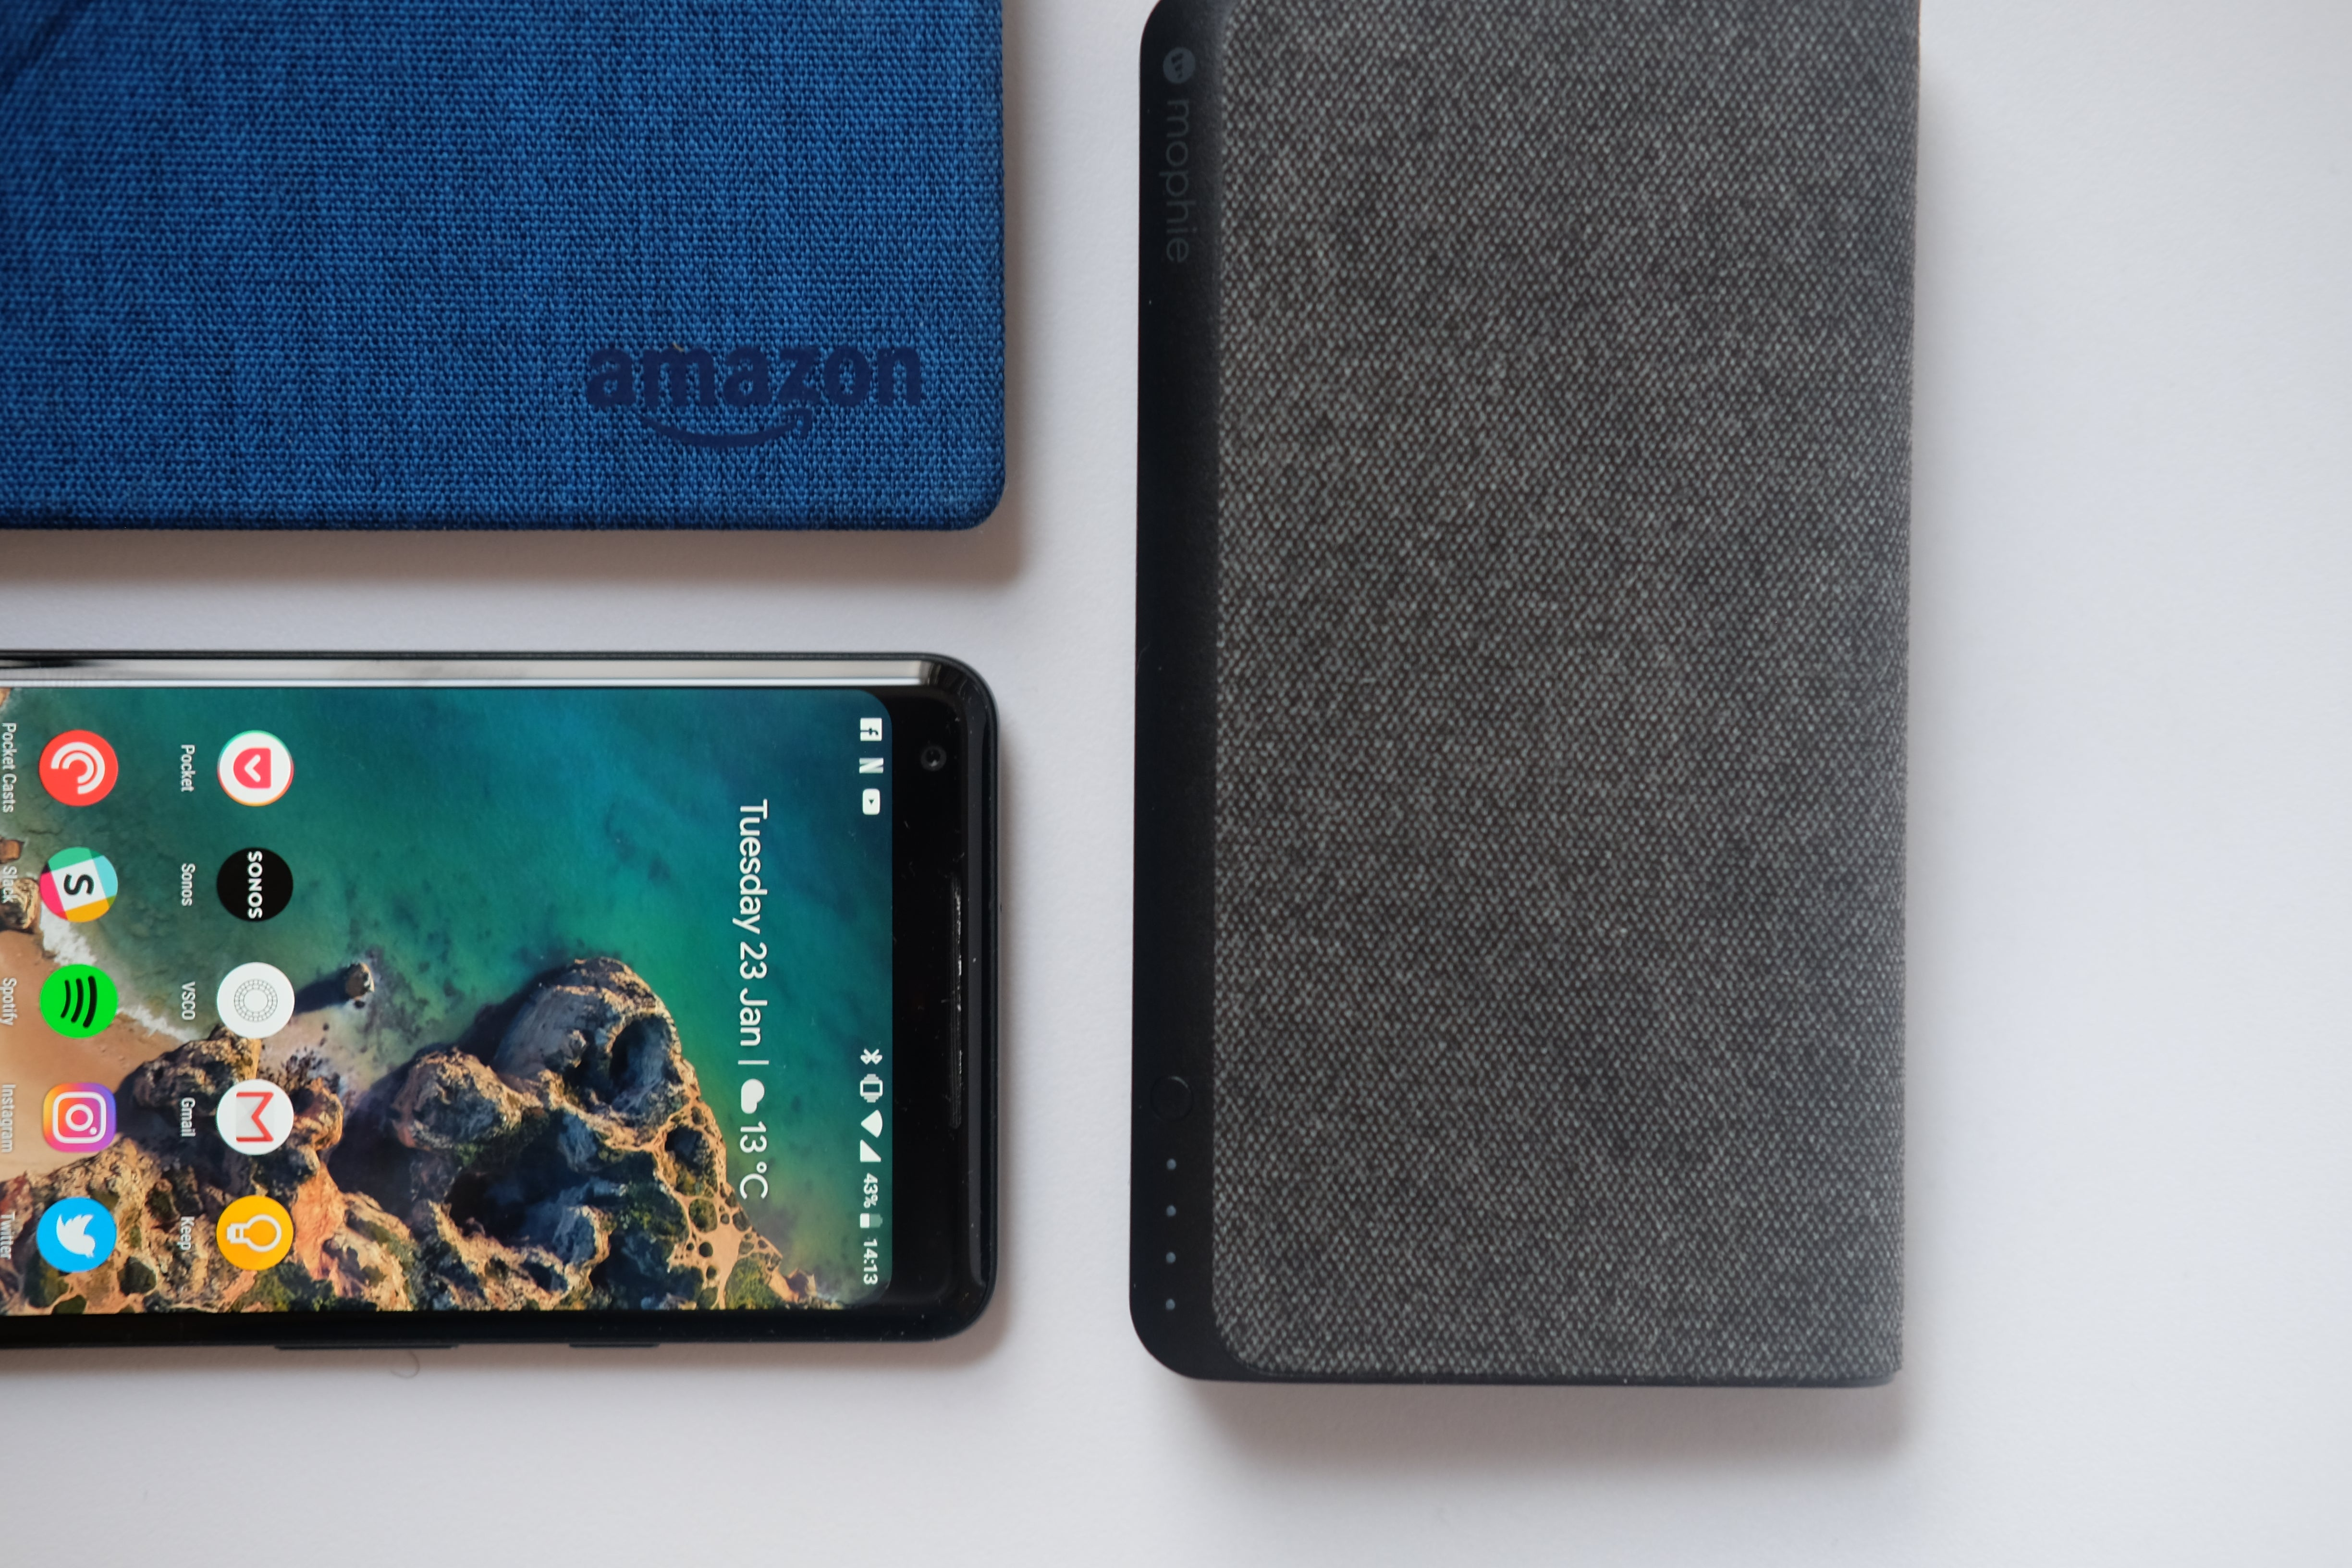 hot sale online e7aad e6429 Best Portable Charger 2019: Which power bank should you buy?